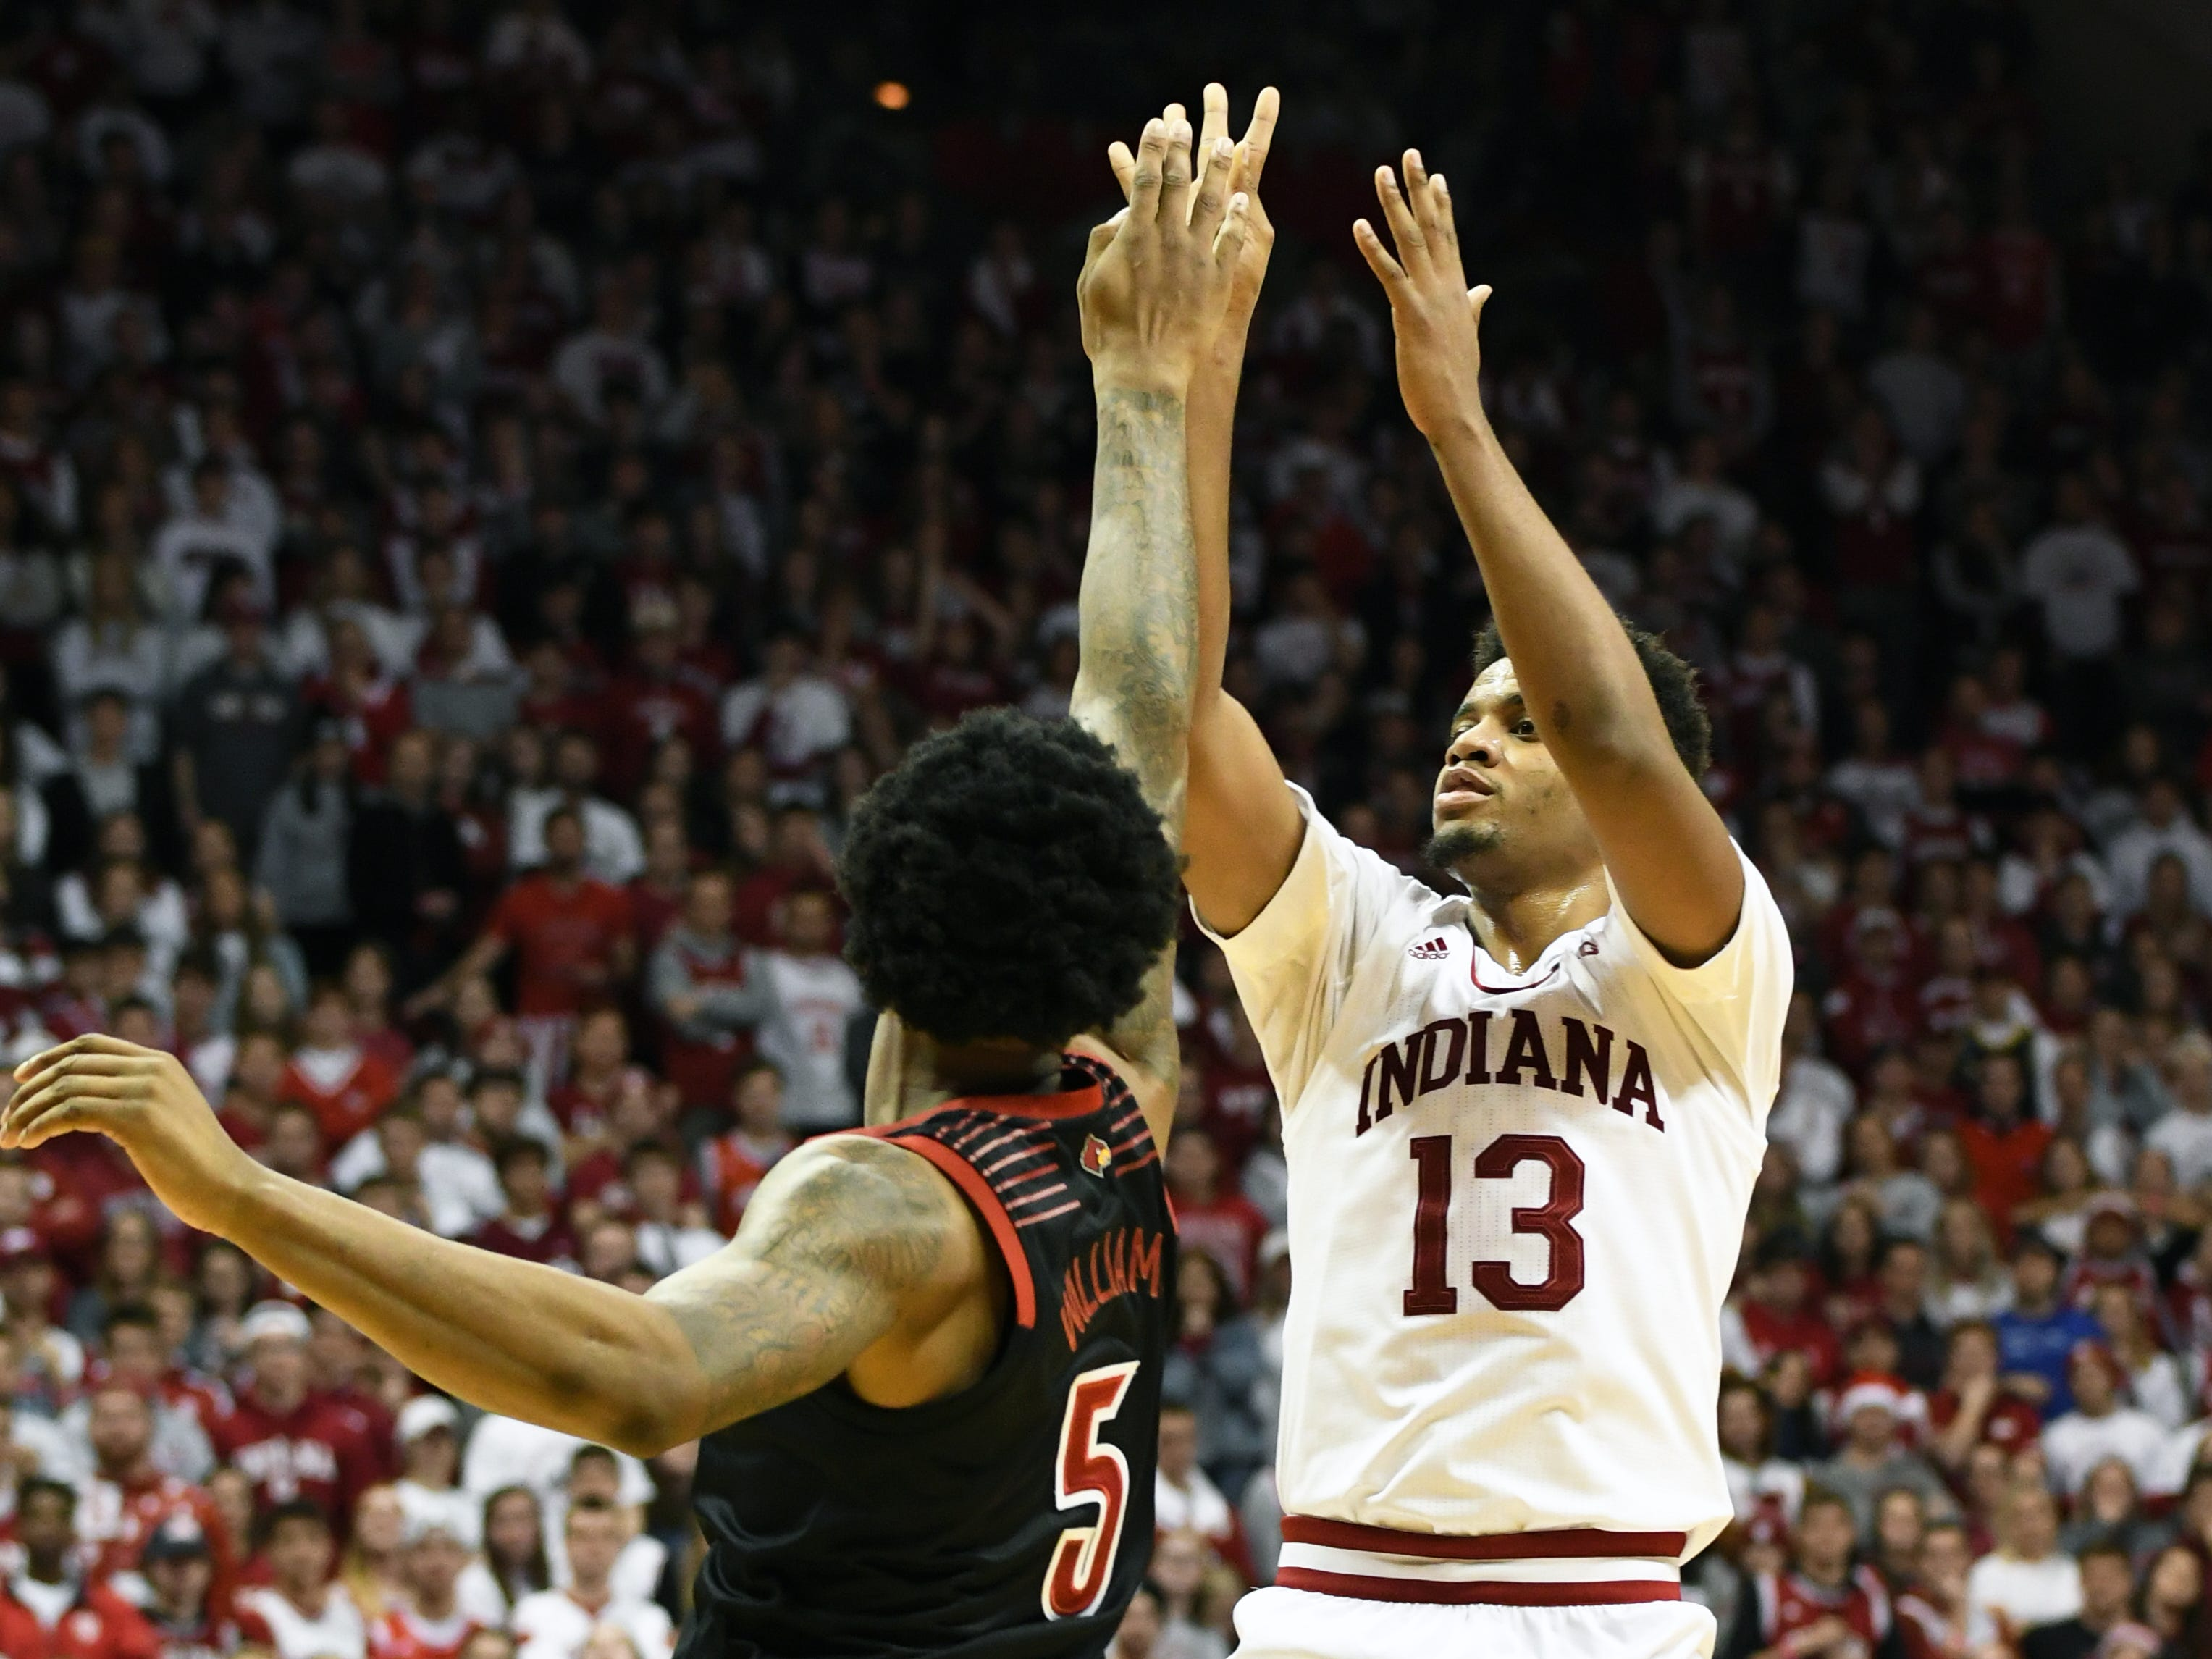 Indiana Hoosiers forward Juwan Morgan (13) shoots the ball during the game against Louisville at Simon Skjodt Assembly Hall in Bloomington, Ind.